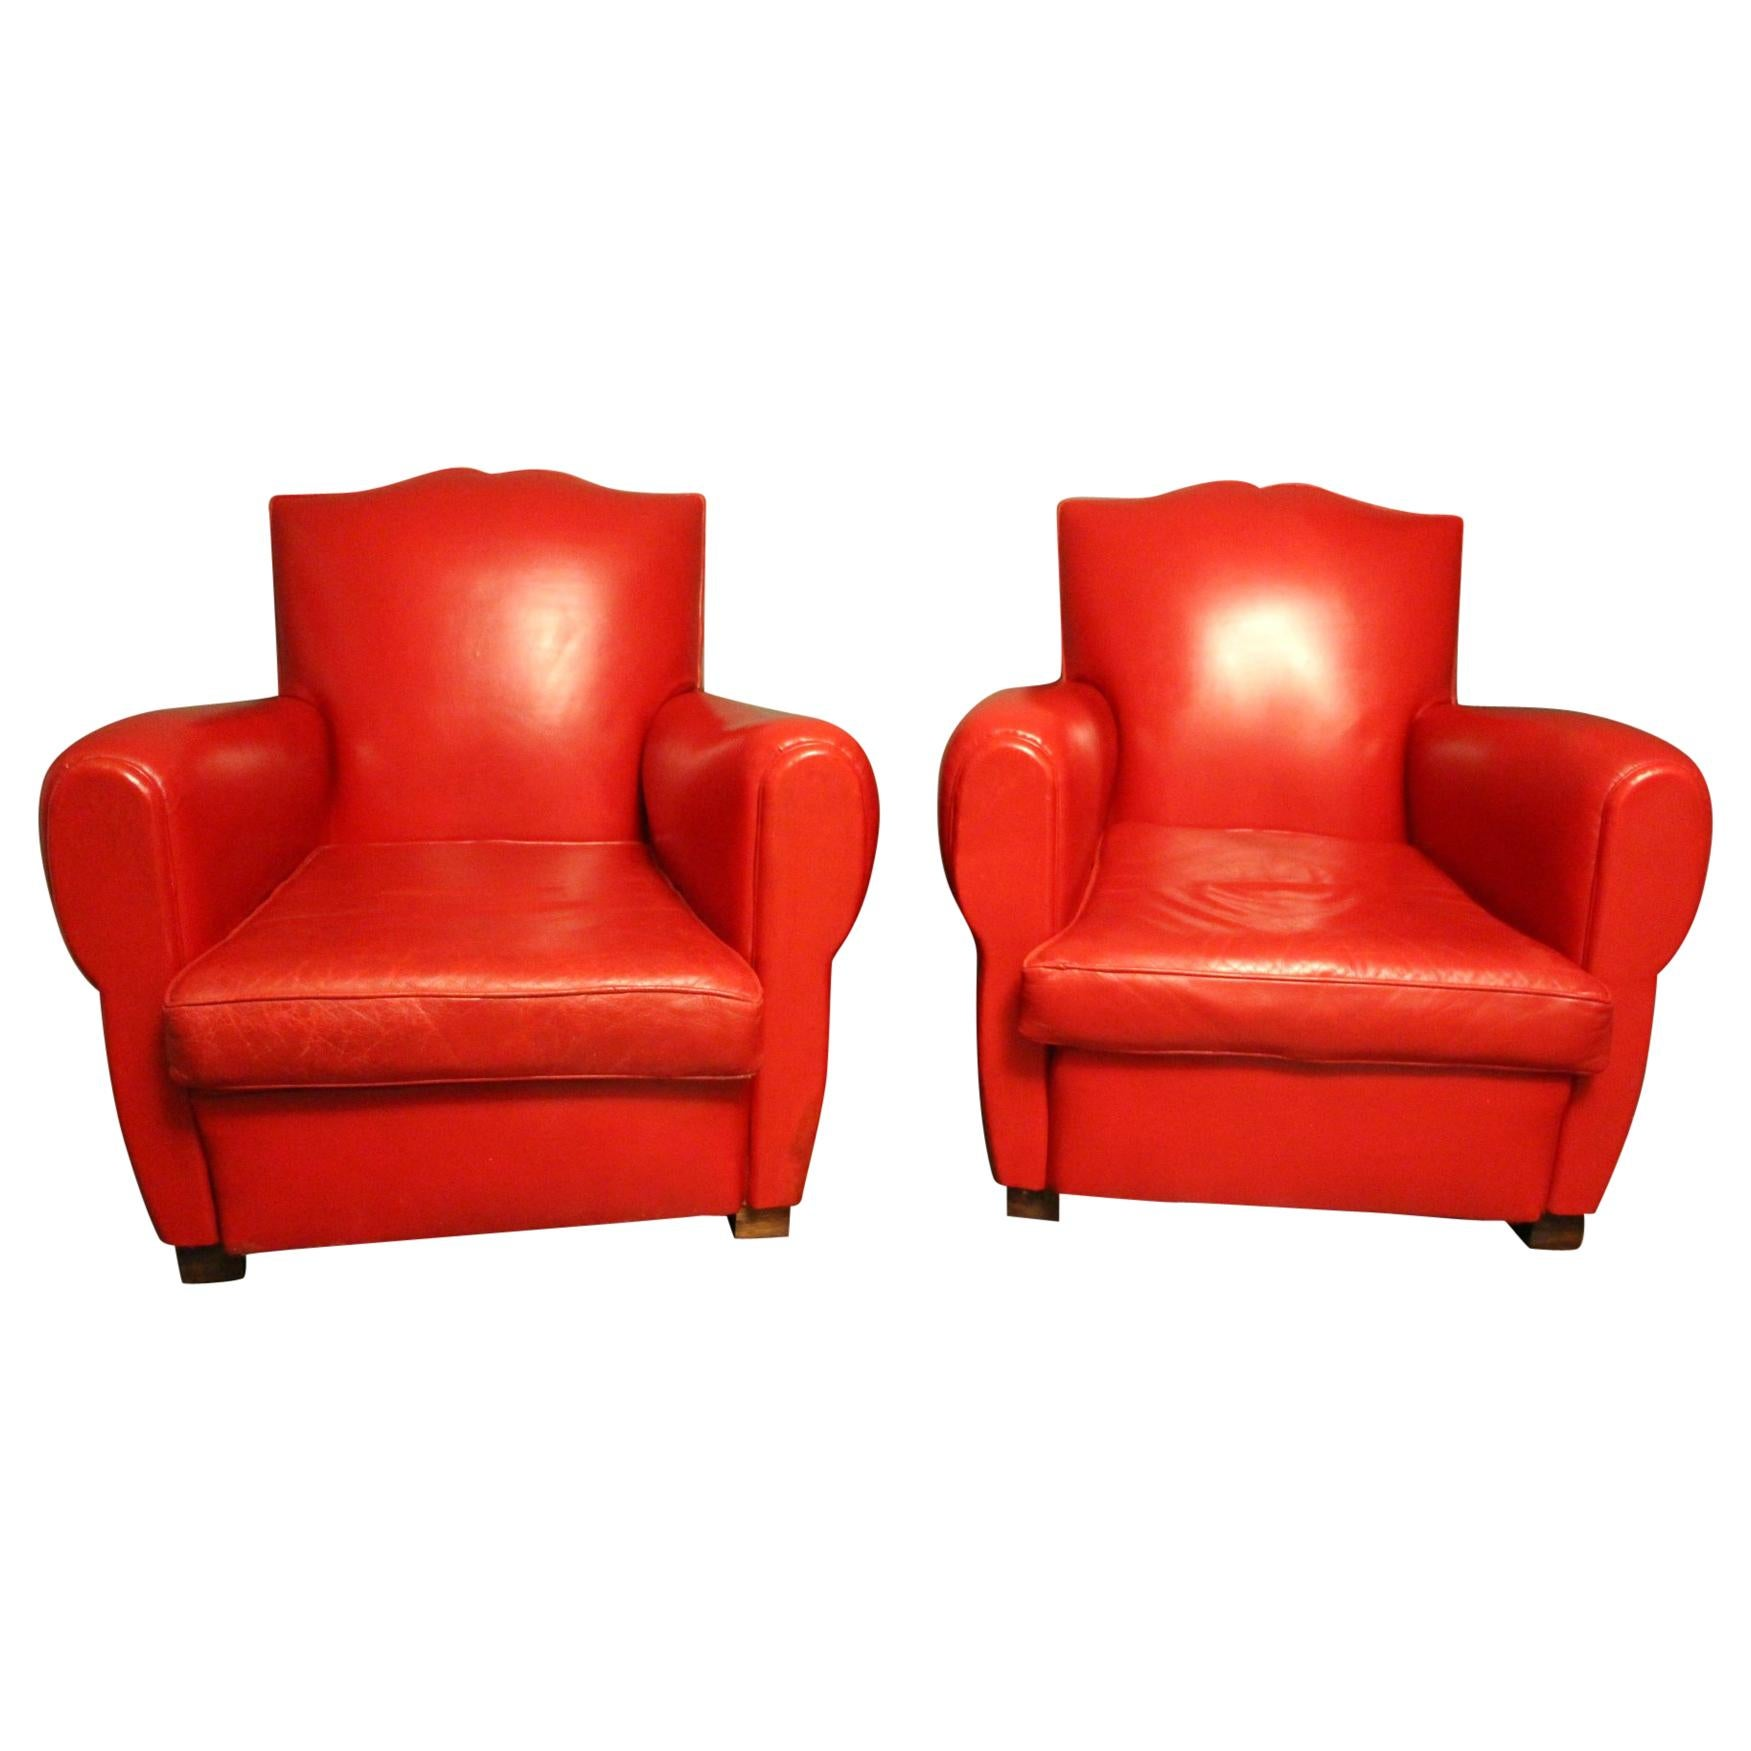 Pair of Art Deco French Mustache Back Club Chairs in Red Leather